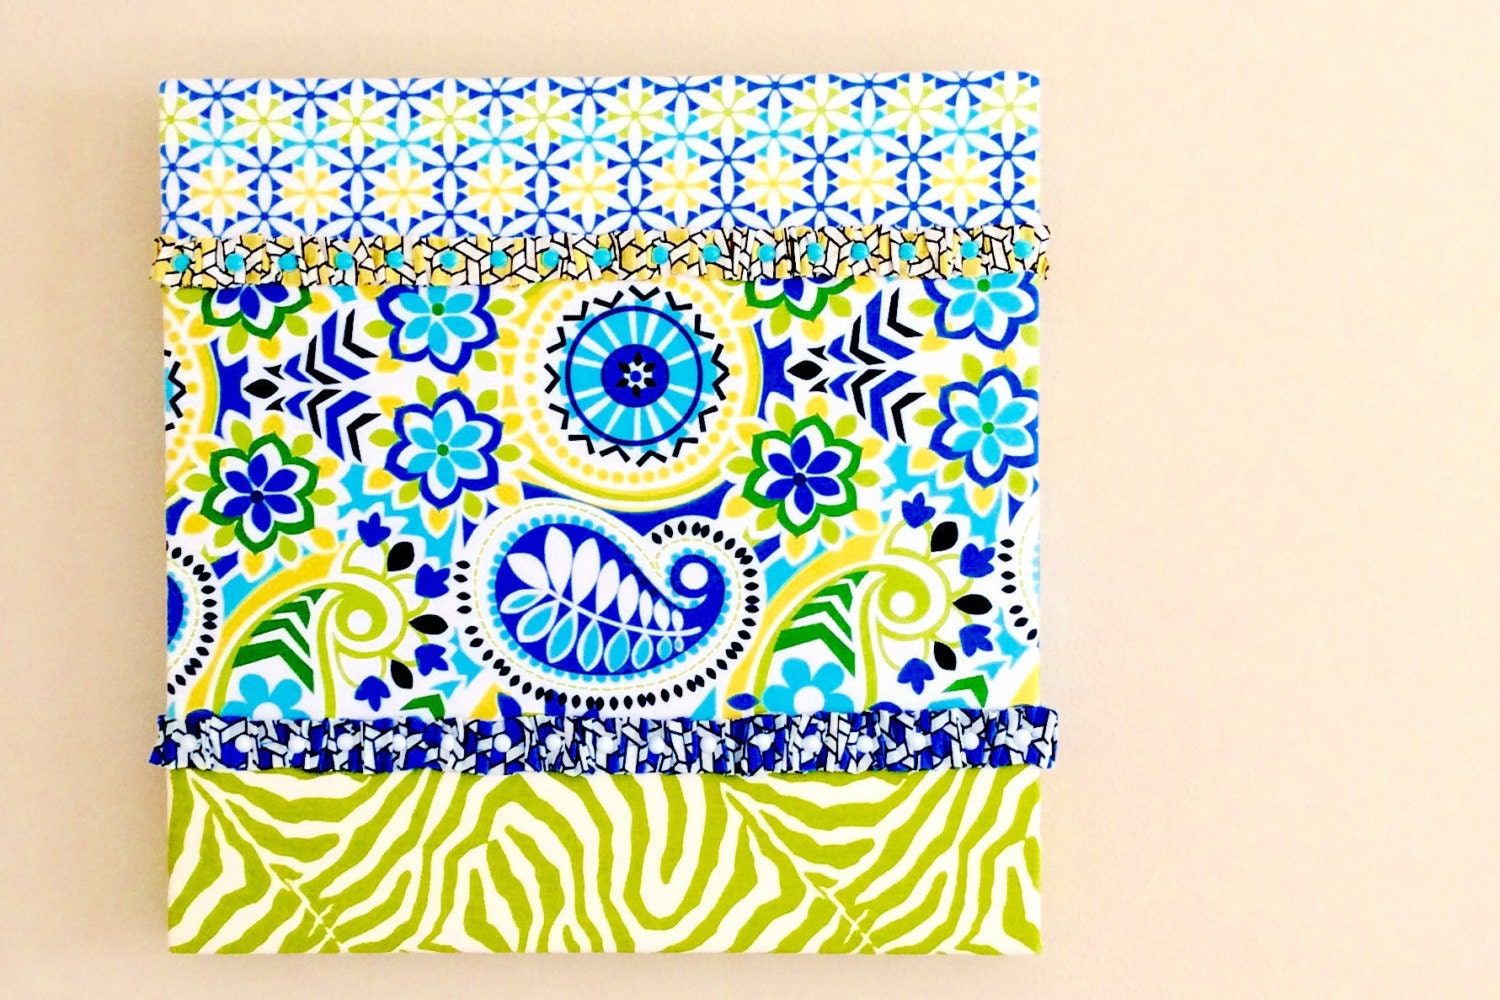 Wall Decor Hanging In Colorful Blue Aqua Yellow And Green